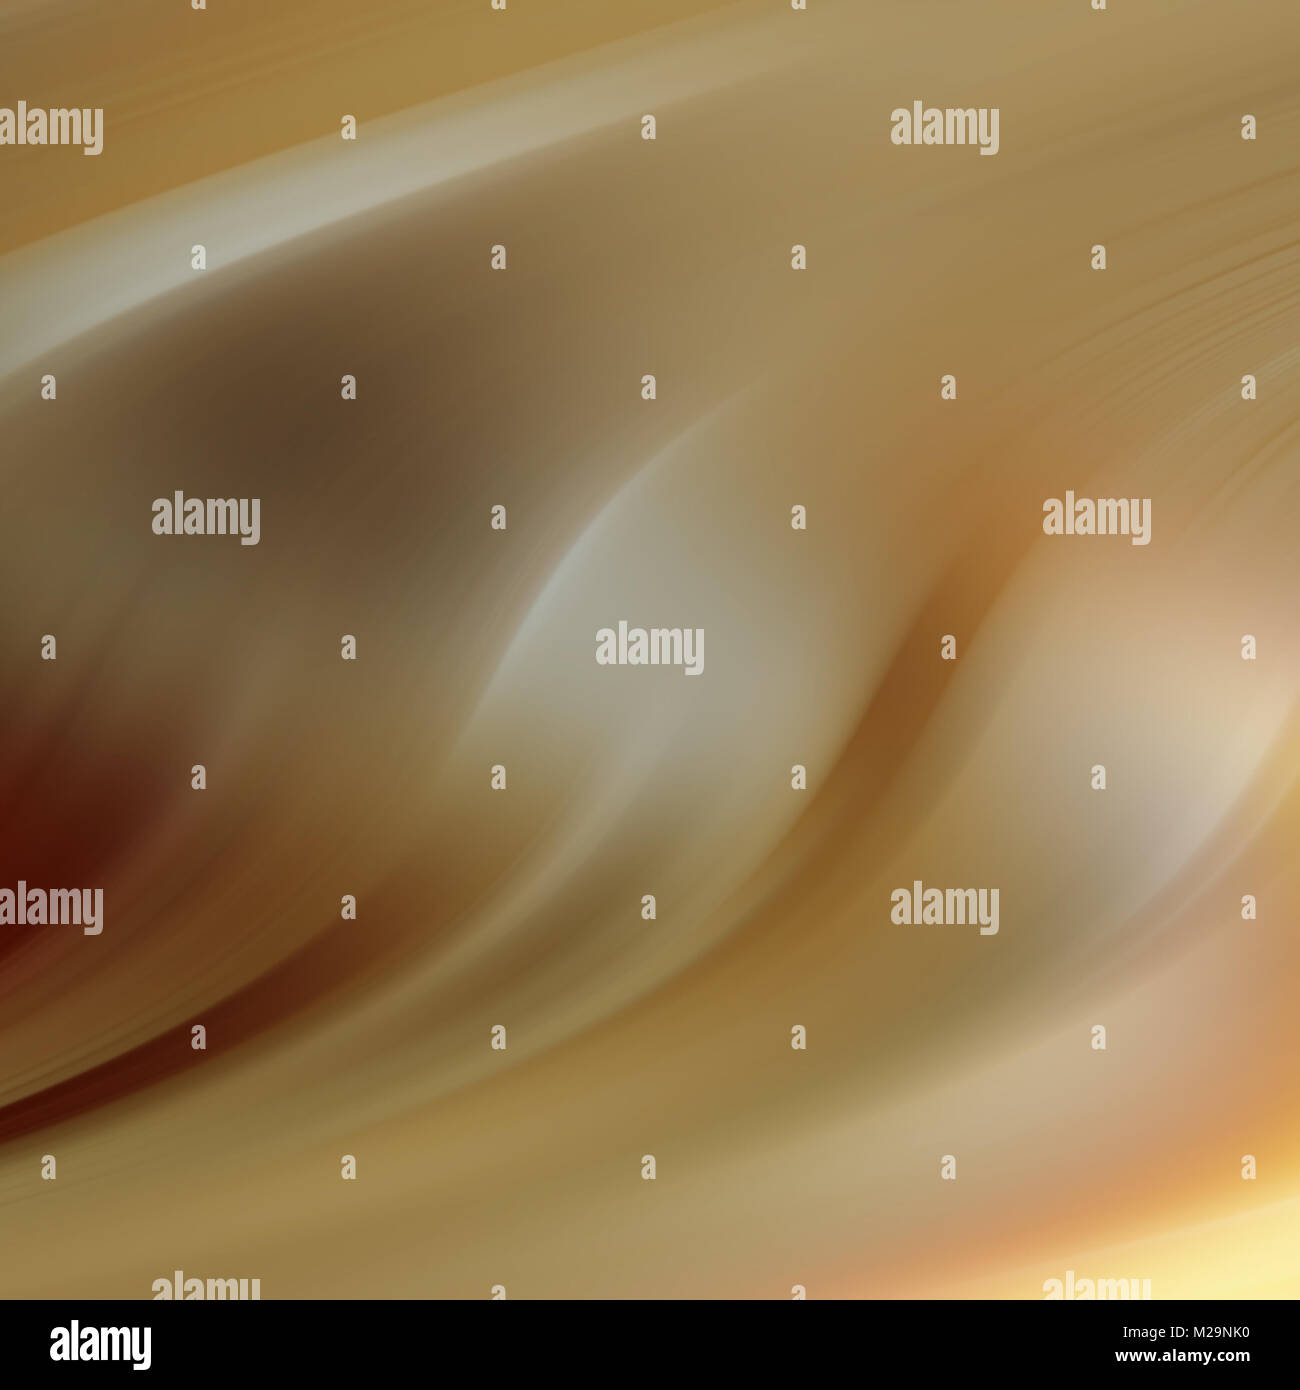 abstract blurry color background. Curved diagonal lines. Design element. - Stock Image